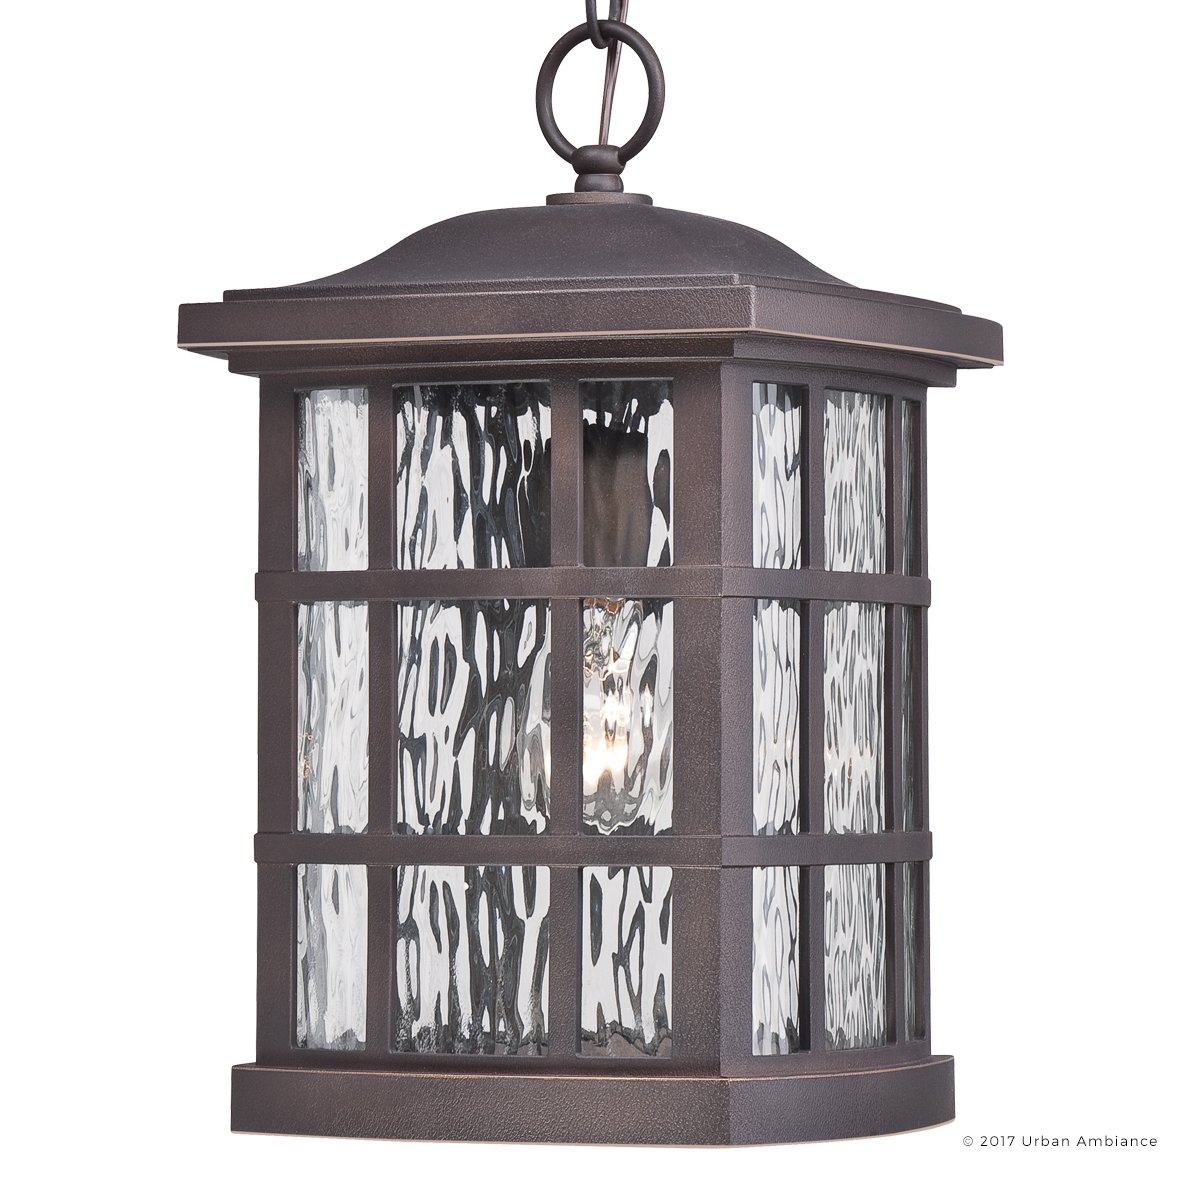 Luxury Craftsman Outdoor Pendant Light, Medium Size: 15''H x 9.5''W, with Tudor Style Elements, Highly-Detailed Design, Oil Rubbed Parisian Bronze Finish and Water Glass, UQL1251 by Urban Ambiance by Urban Ambiance